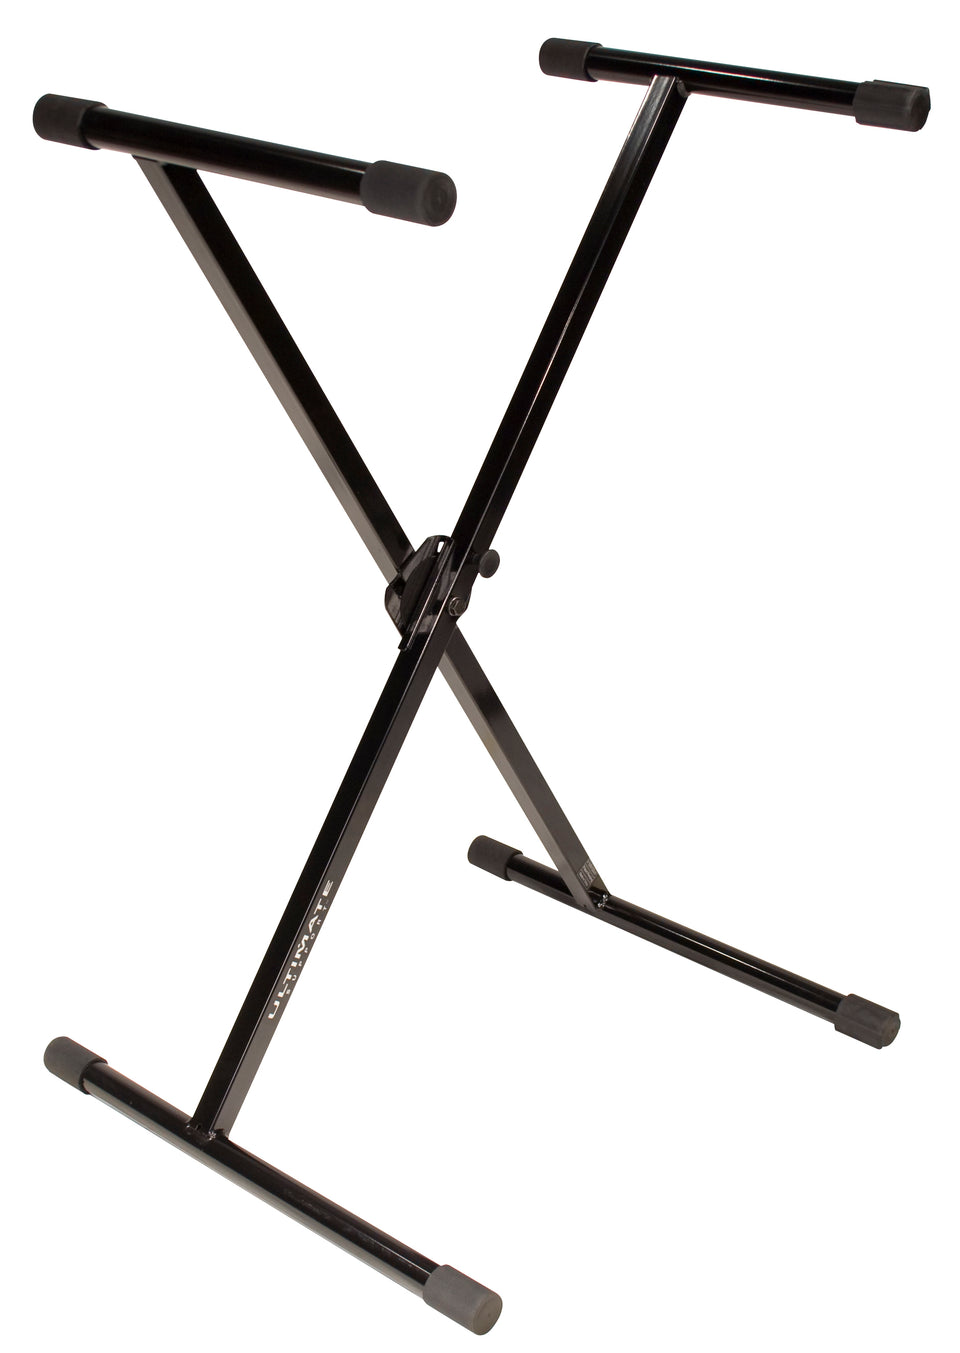 Ultimate Support IQ1000 Keyboard Stand